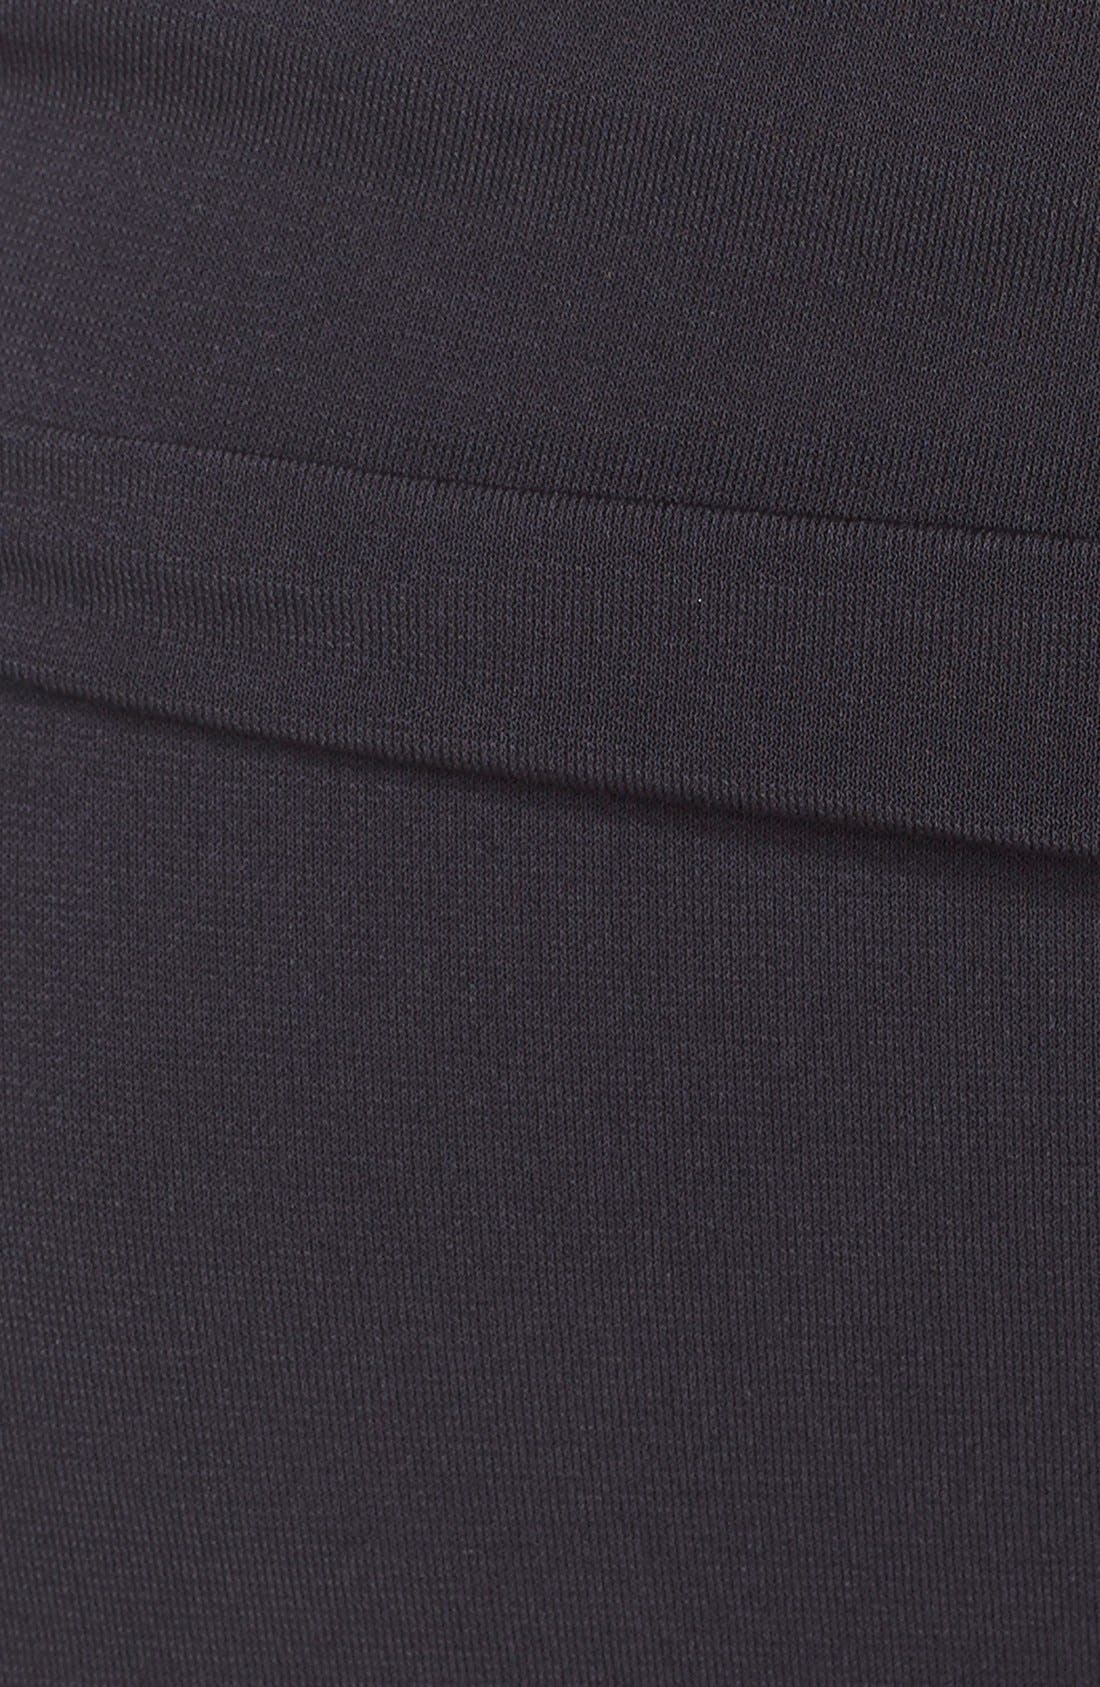 MAGICSUIT<SUP>®</SUP>, Ruched Bikini Bottoms, Alternate thumbnail 6, color, BLACK TONES